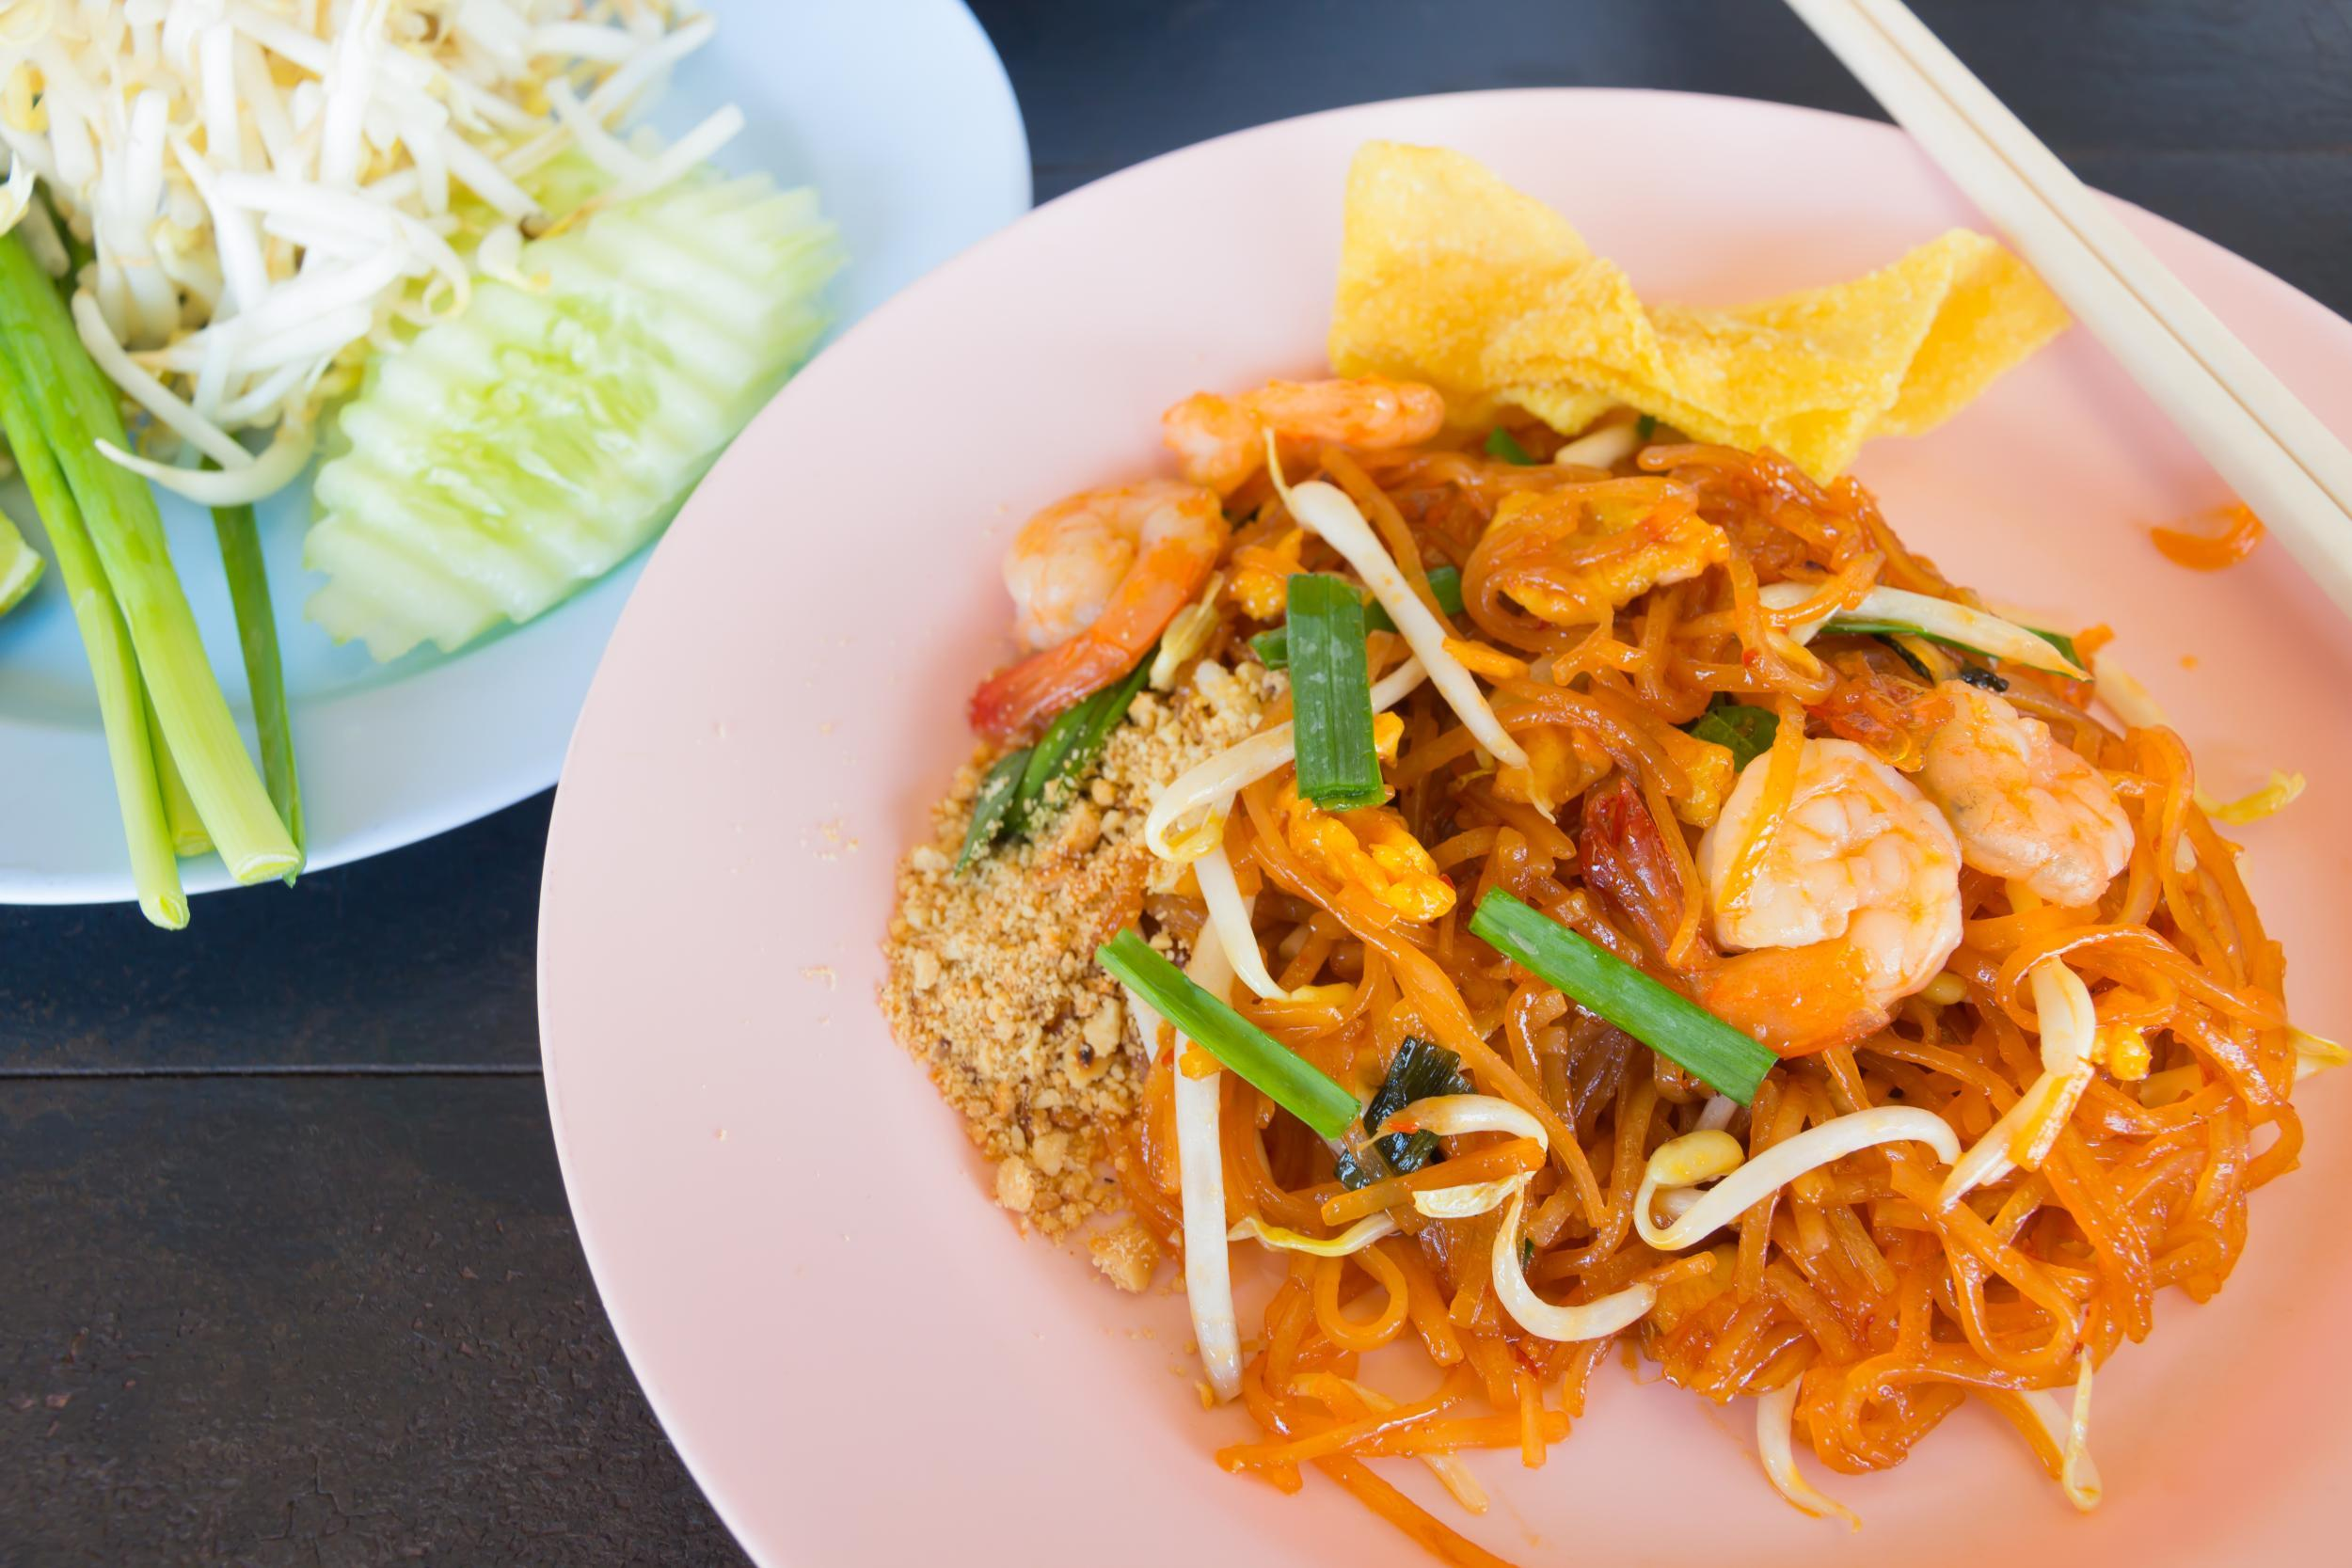 Head chef at Thai restaurant hits back at rude review: 'you don't need to have lived in Sydney to appreciate authentic Thai'